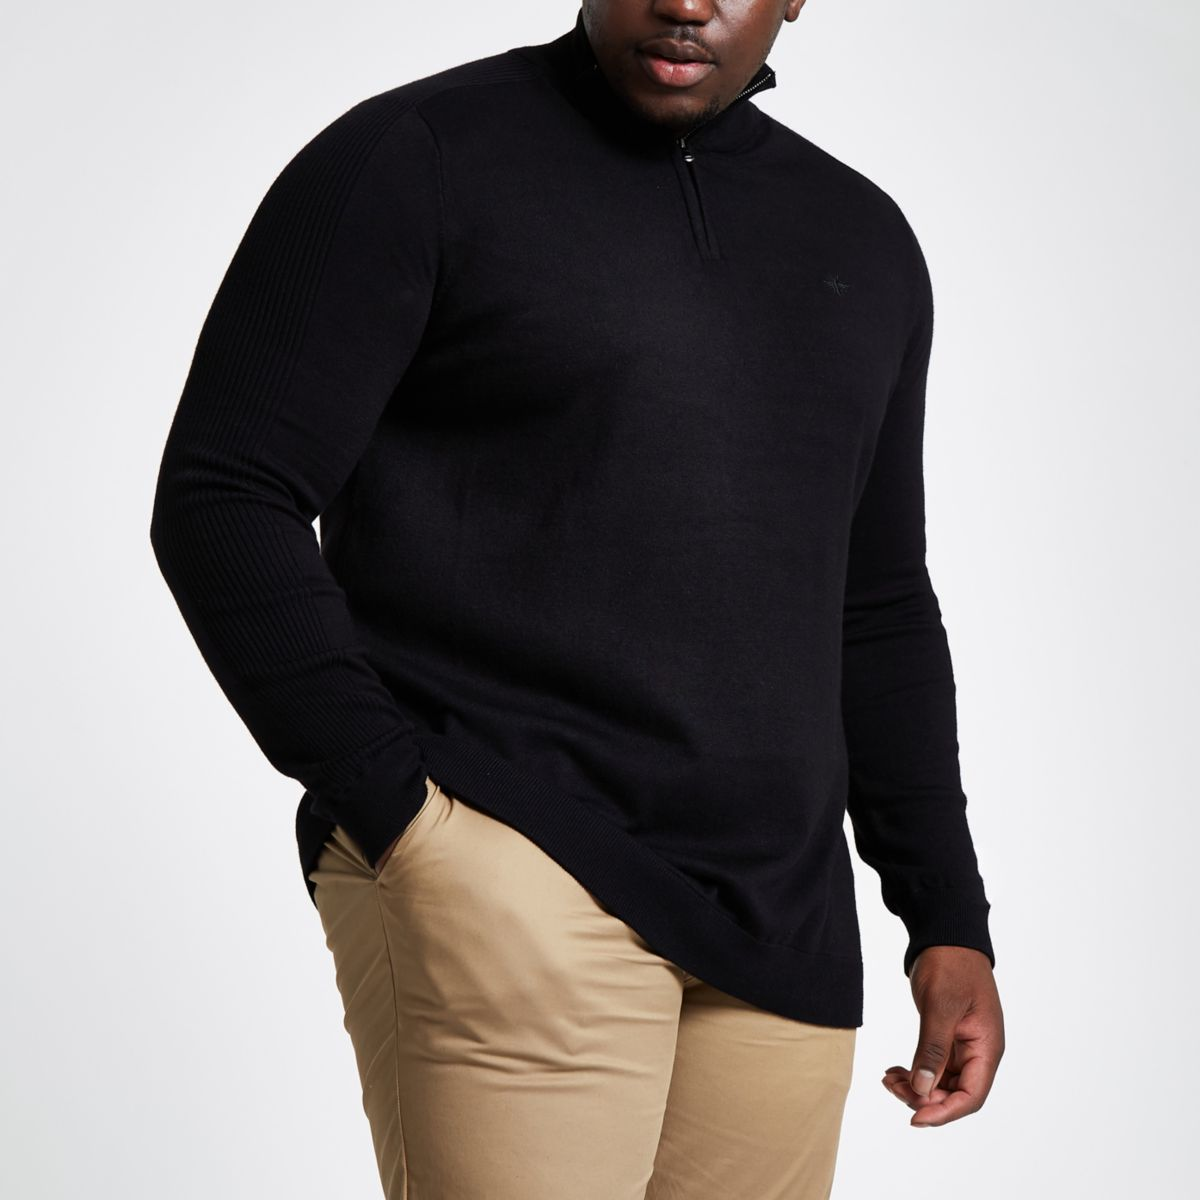 Big and Tall black knit zip up sweater